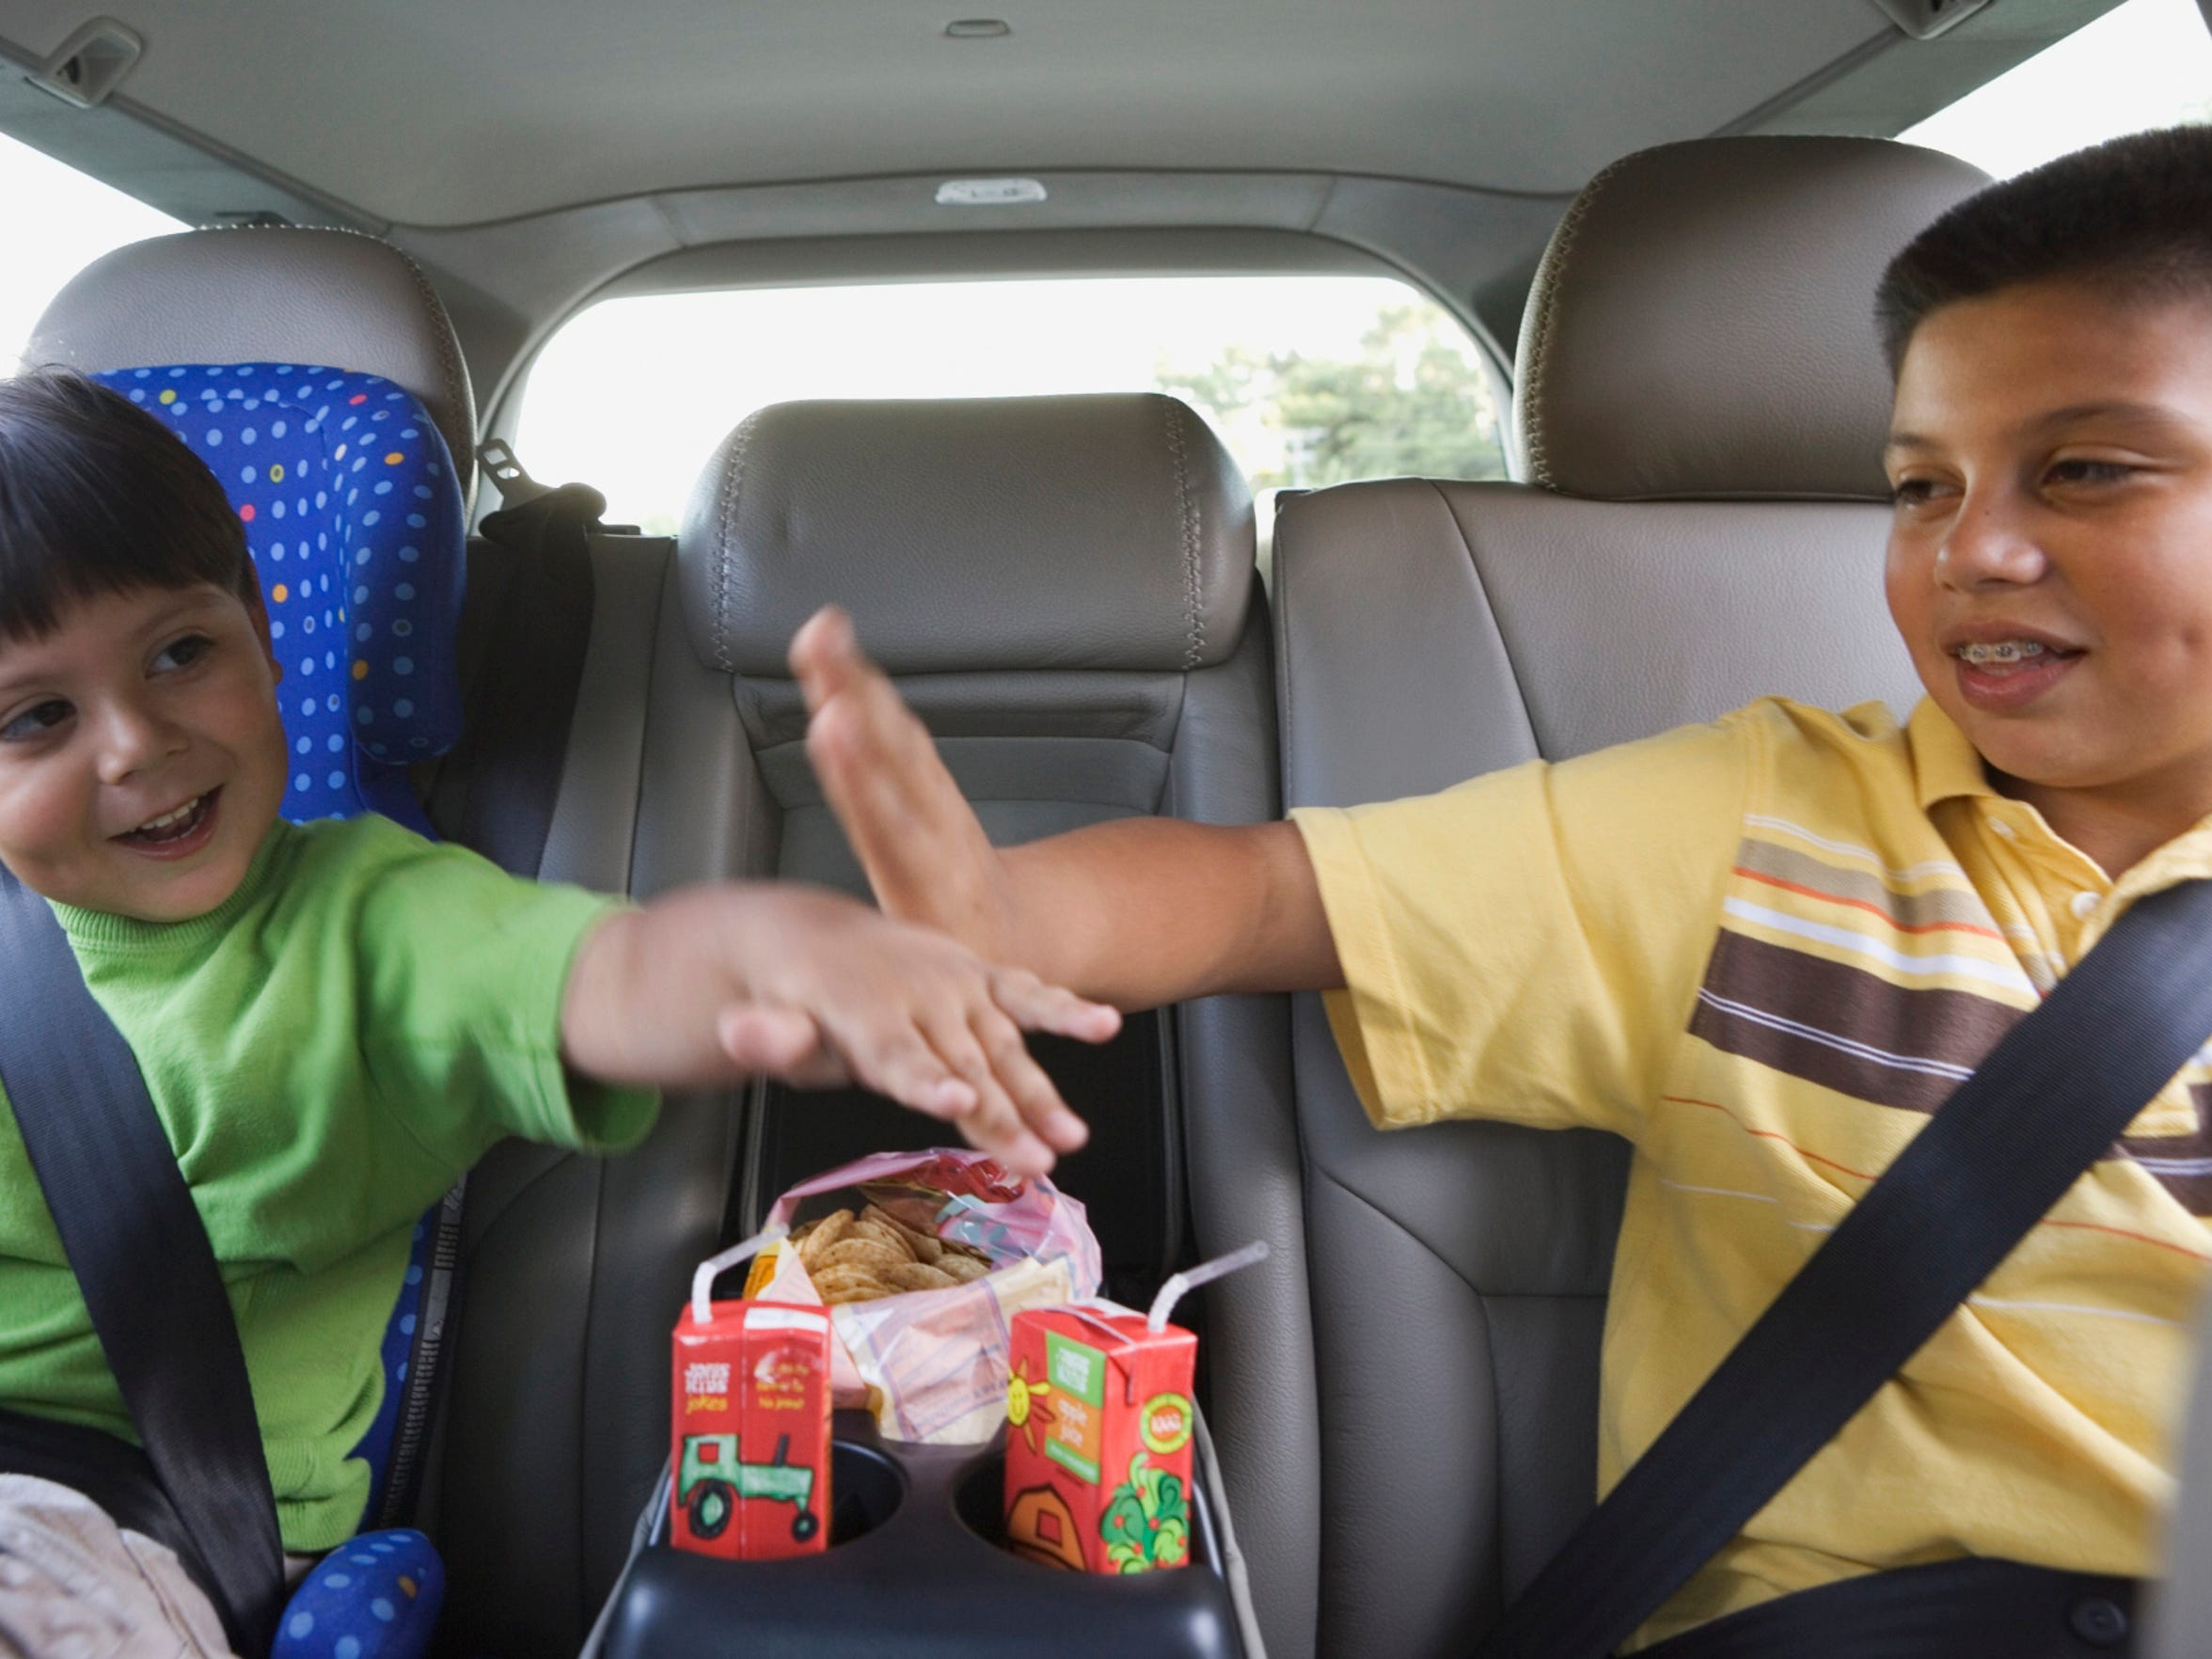 Try out some old-fashioned road games on the ride.